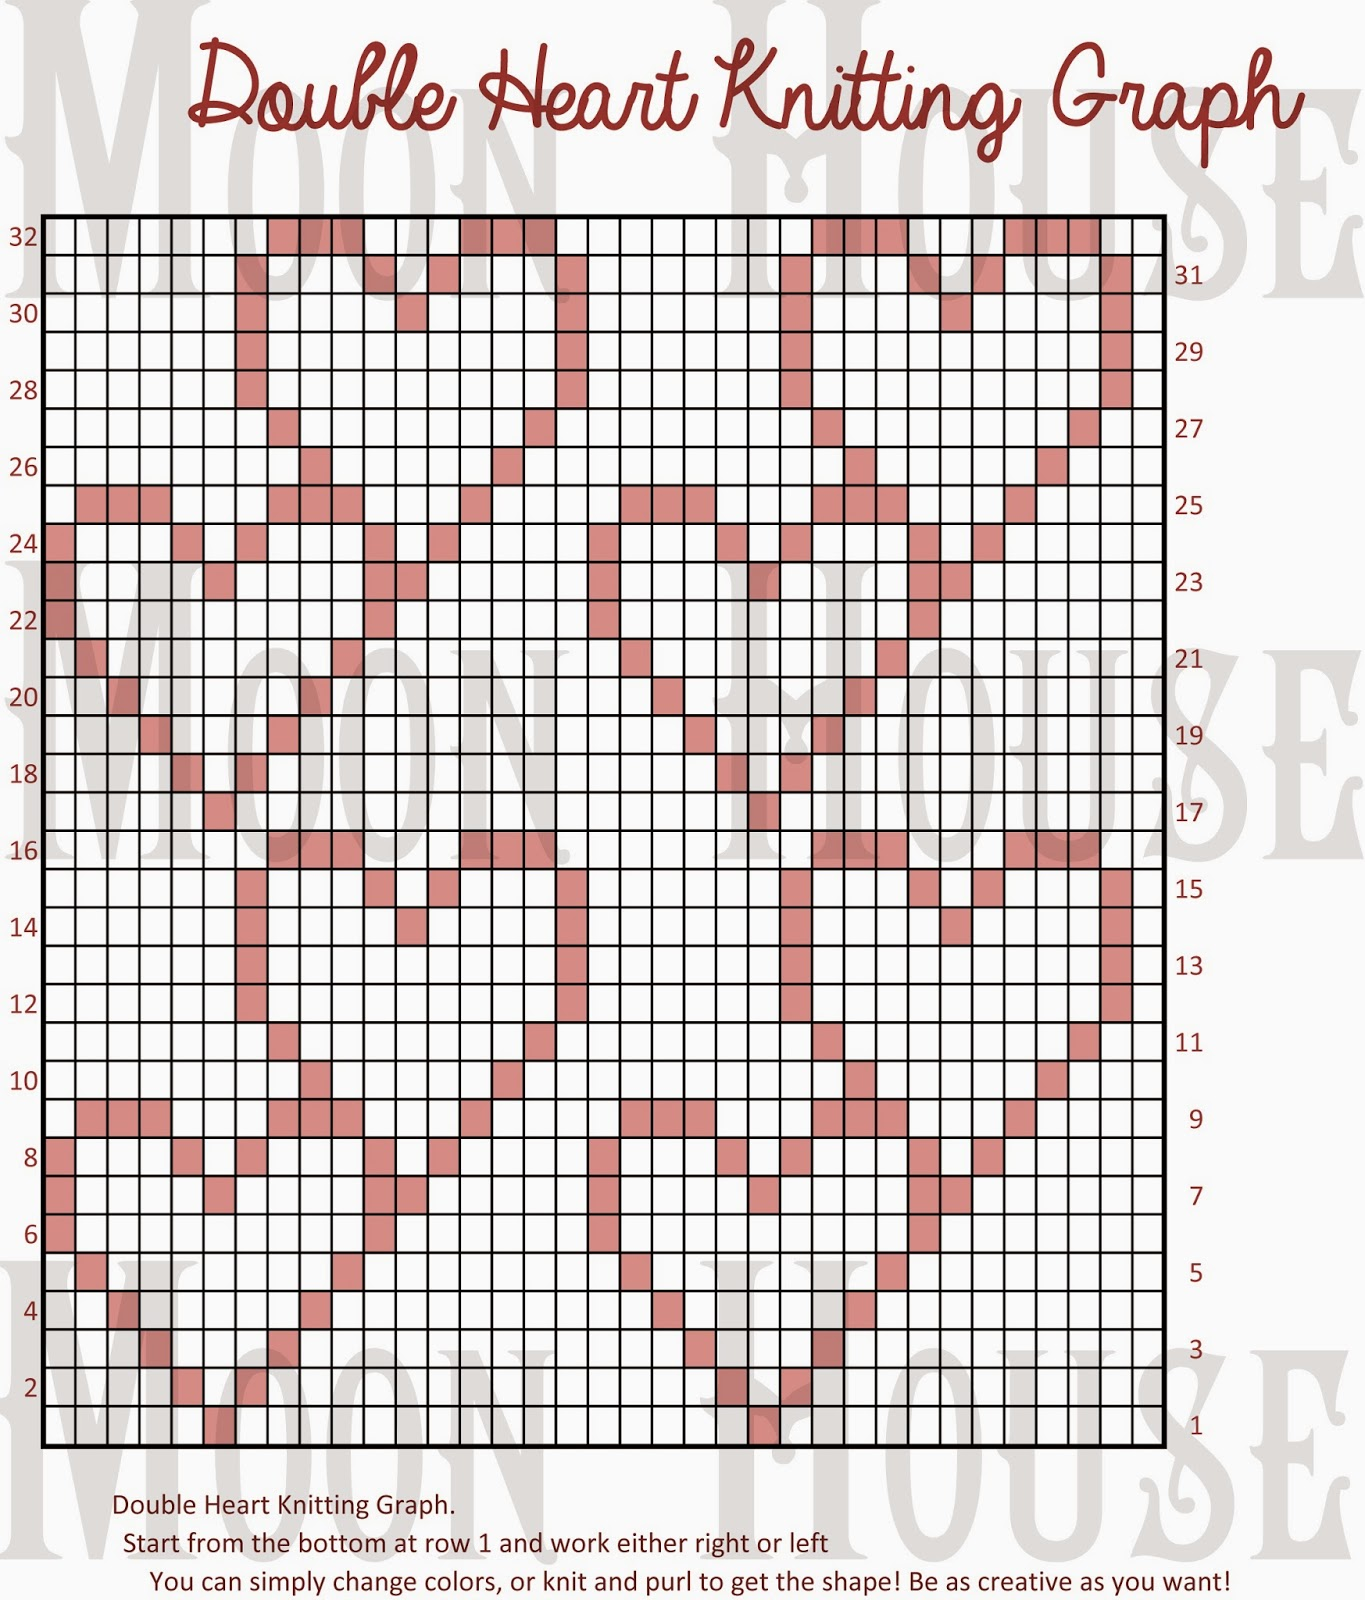 Knitting Design Graph : Moon house double heart knitting graph